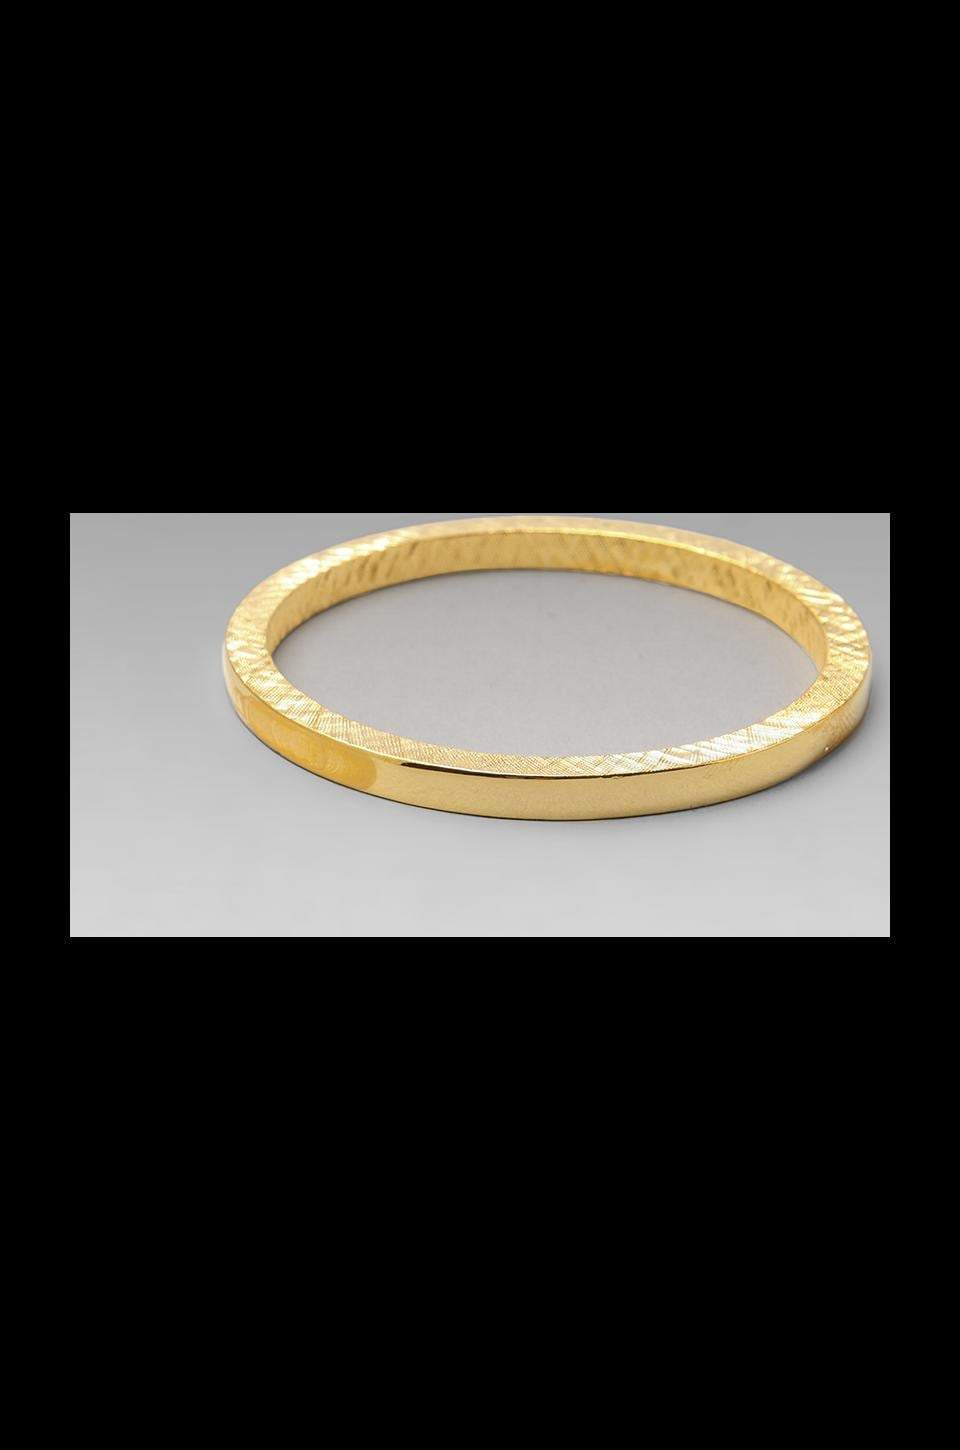 Kenneth Jay Lane Bangle in Gold